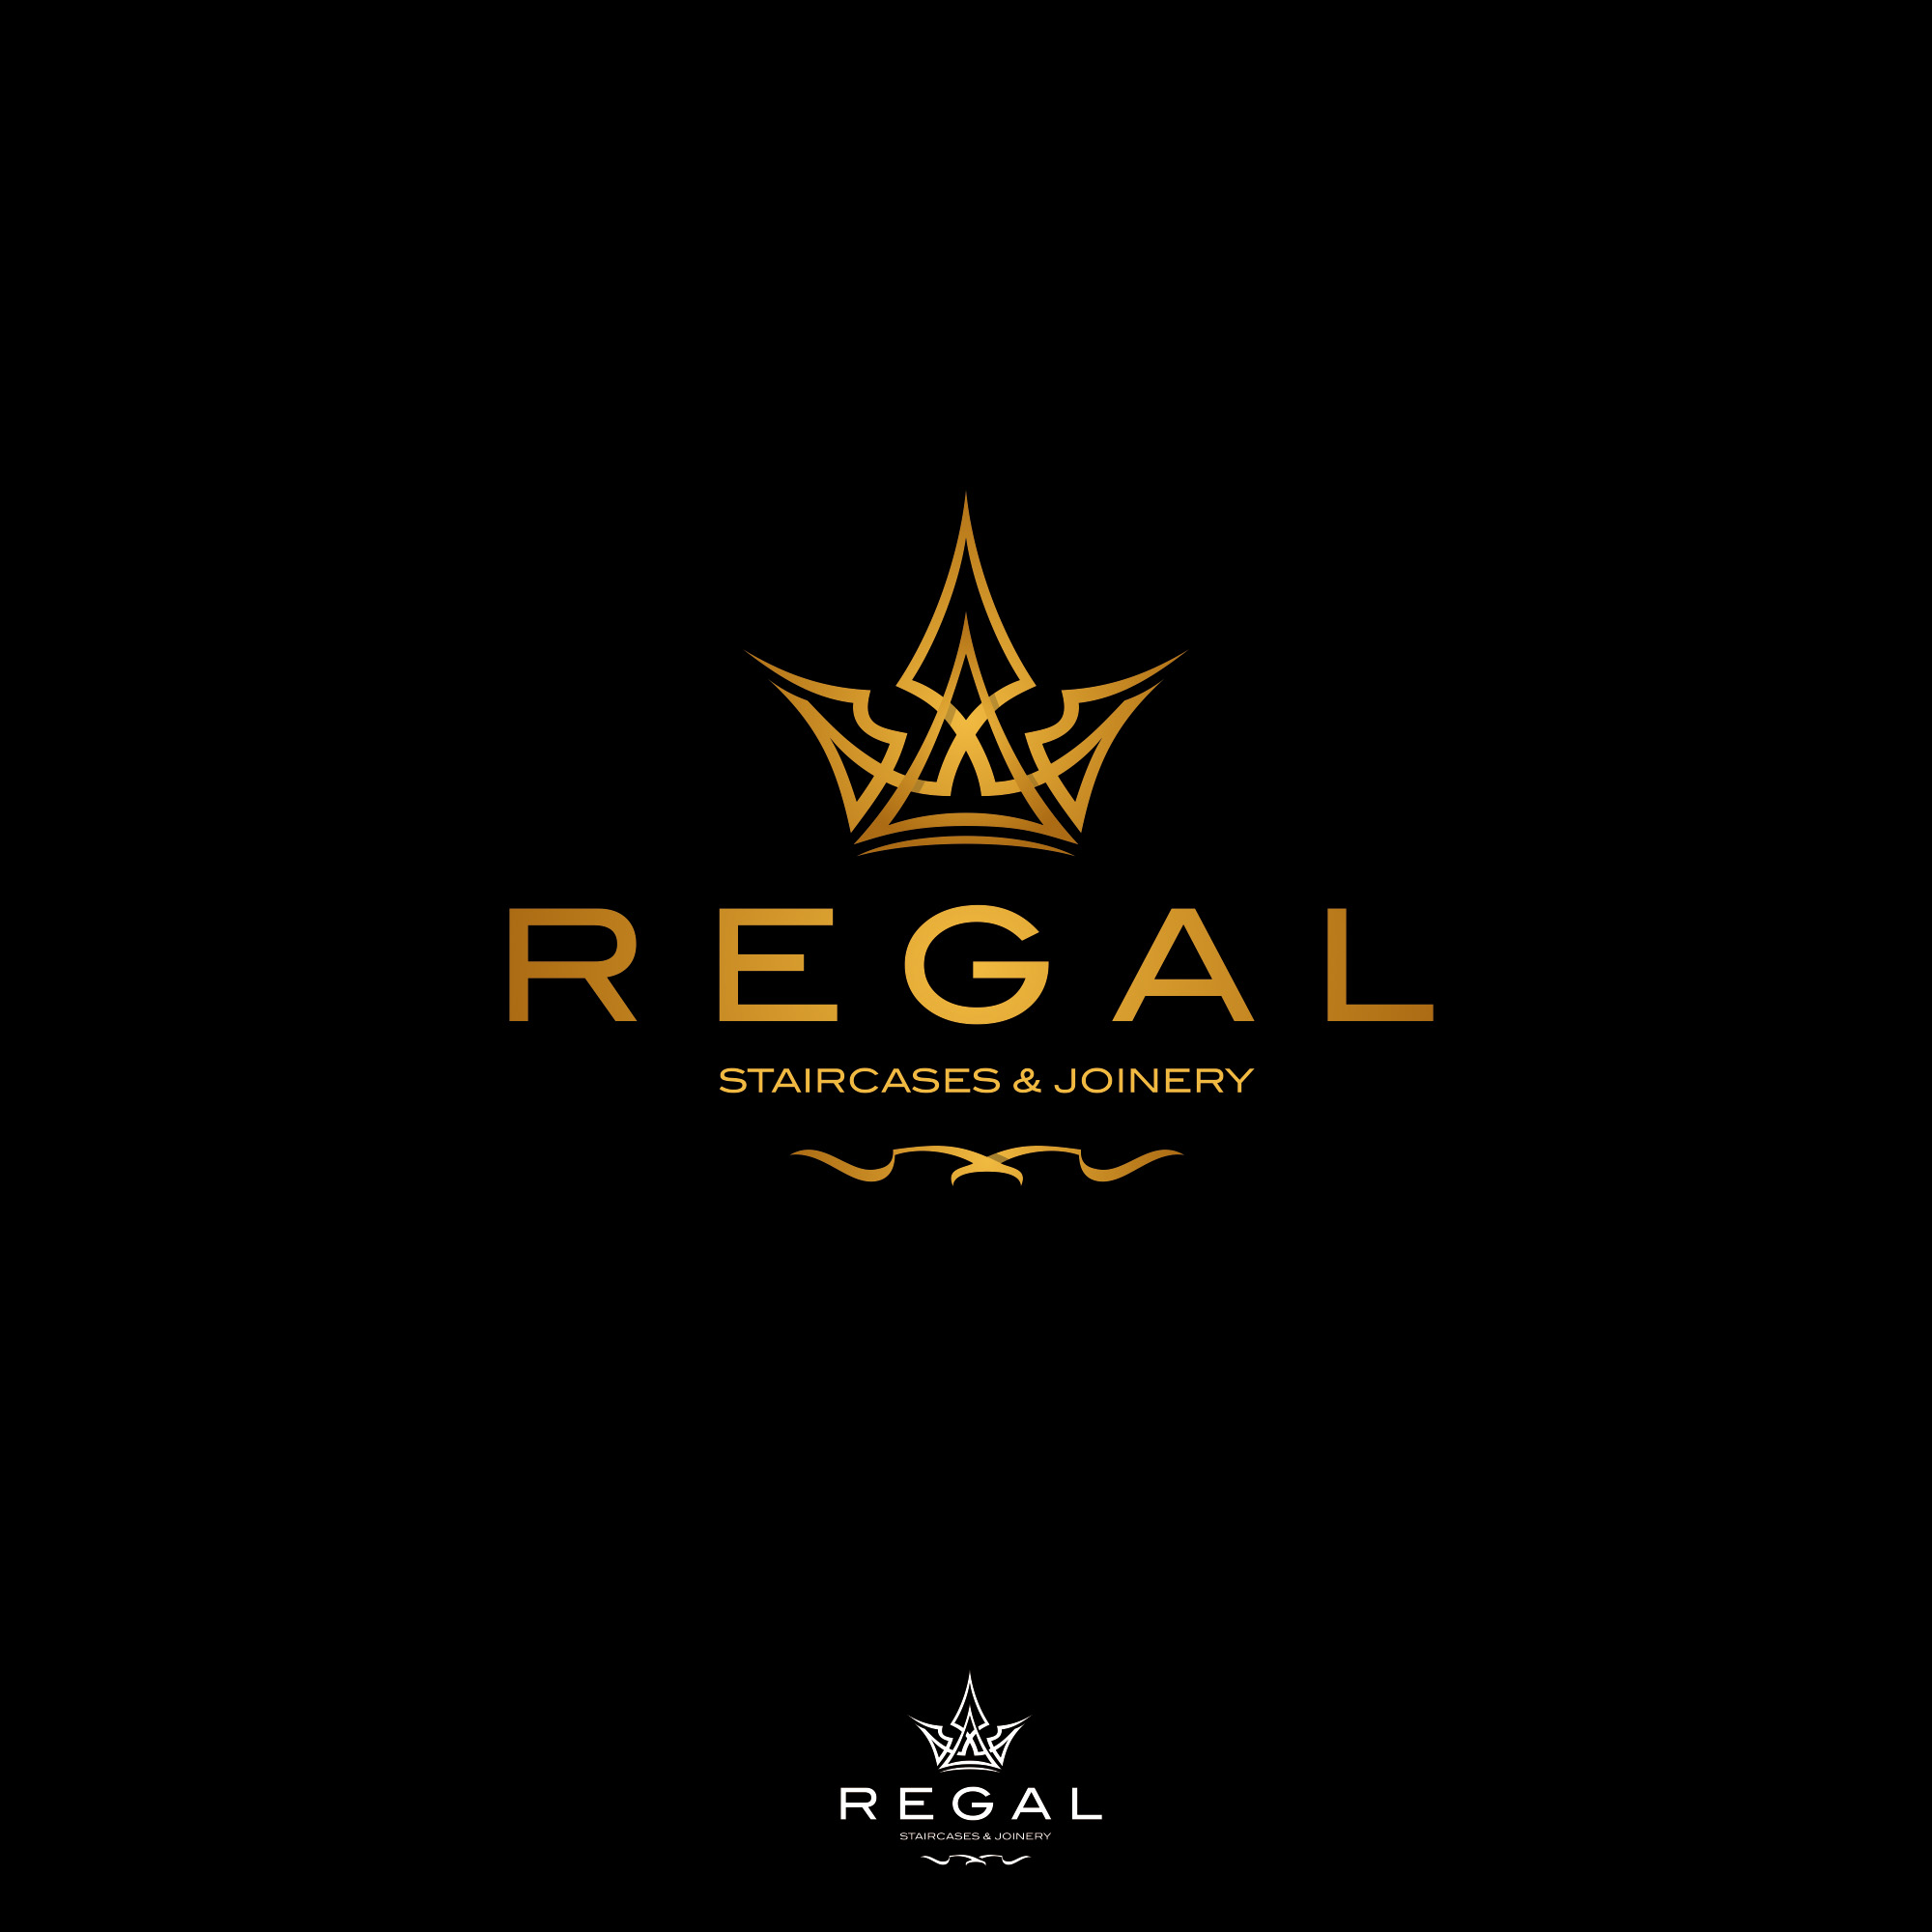 Regal Design Elegant, Serious, Building Logo Design For Regal Staircases & Joinery By Bognar | Design #23680410